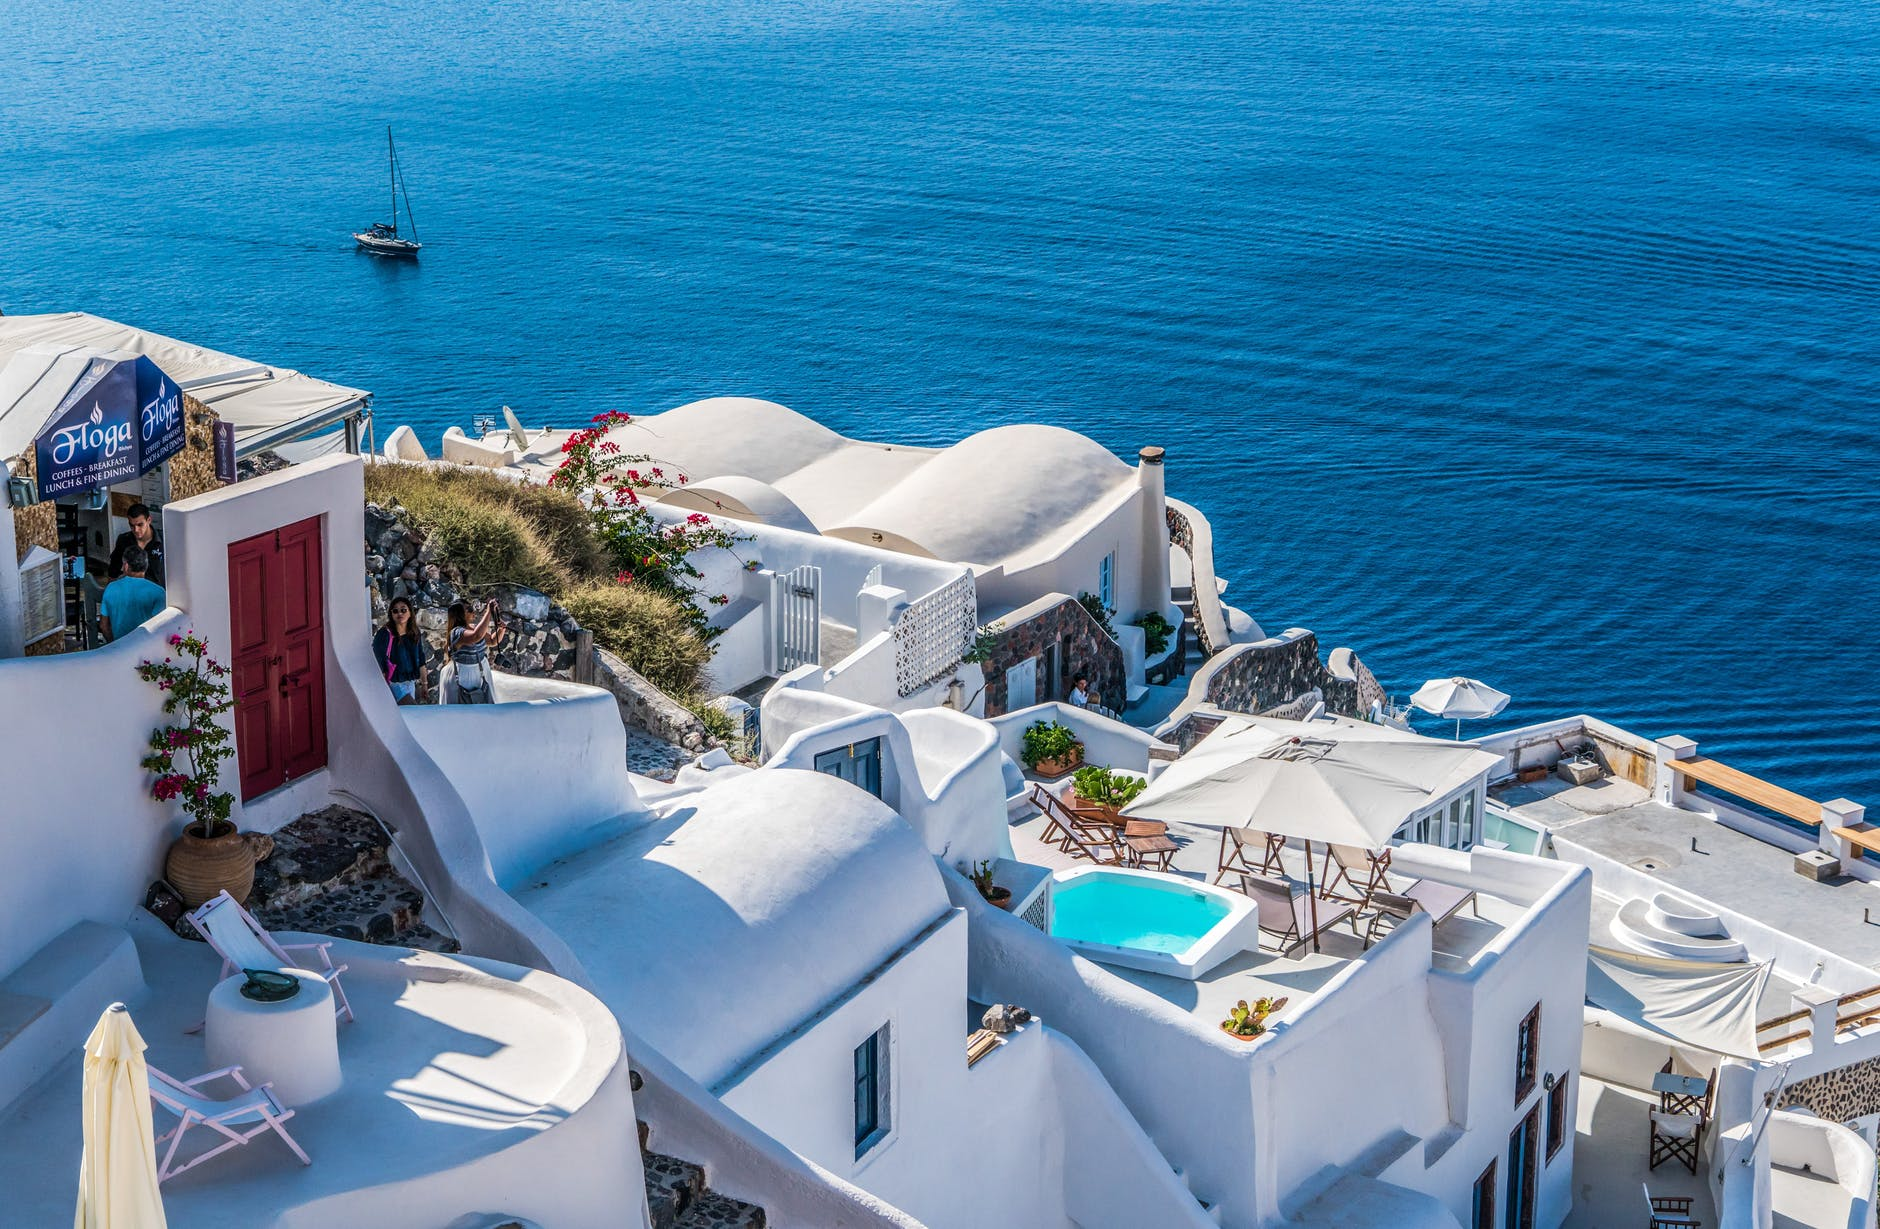 Top 10 Best Places to Visit in Greece 2019